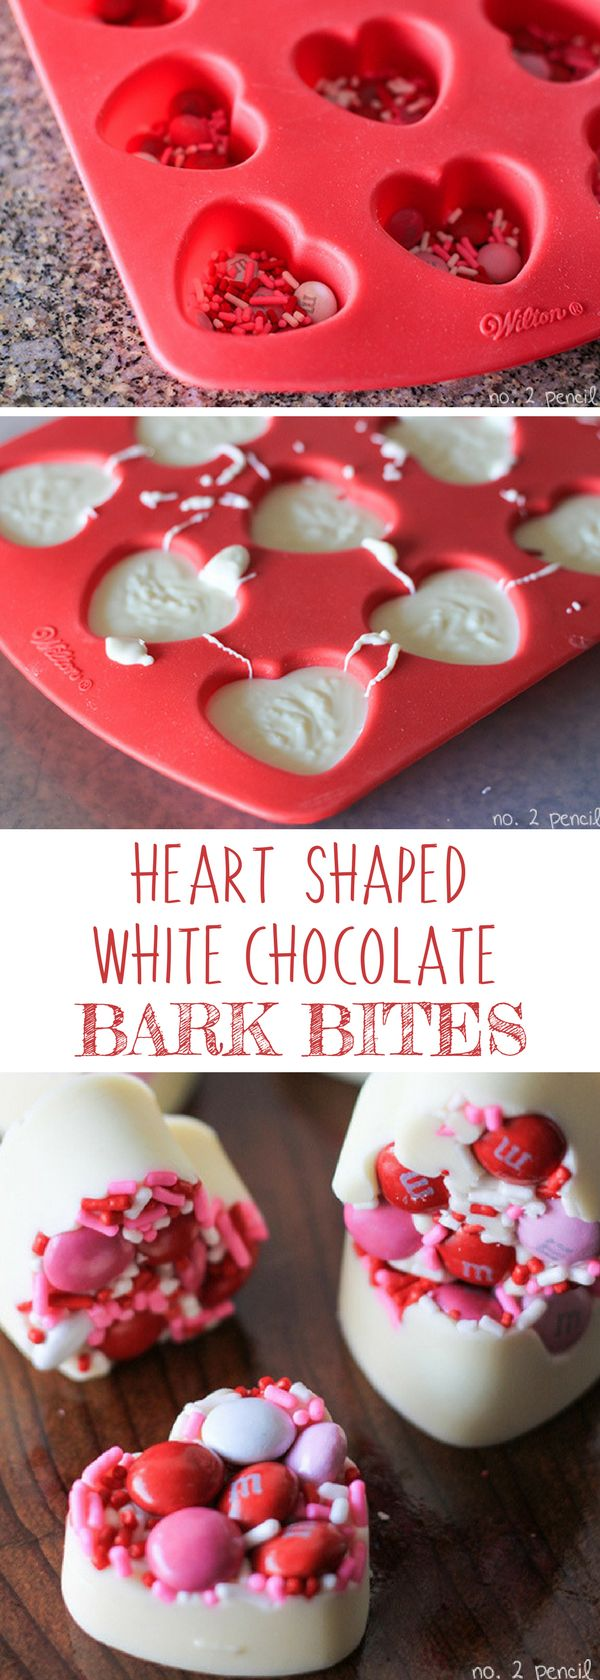 Heart Shaped White Chocolate Bark Bites